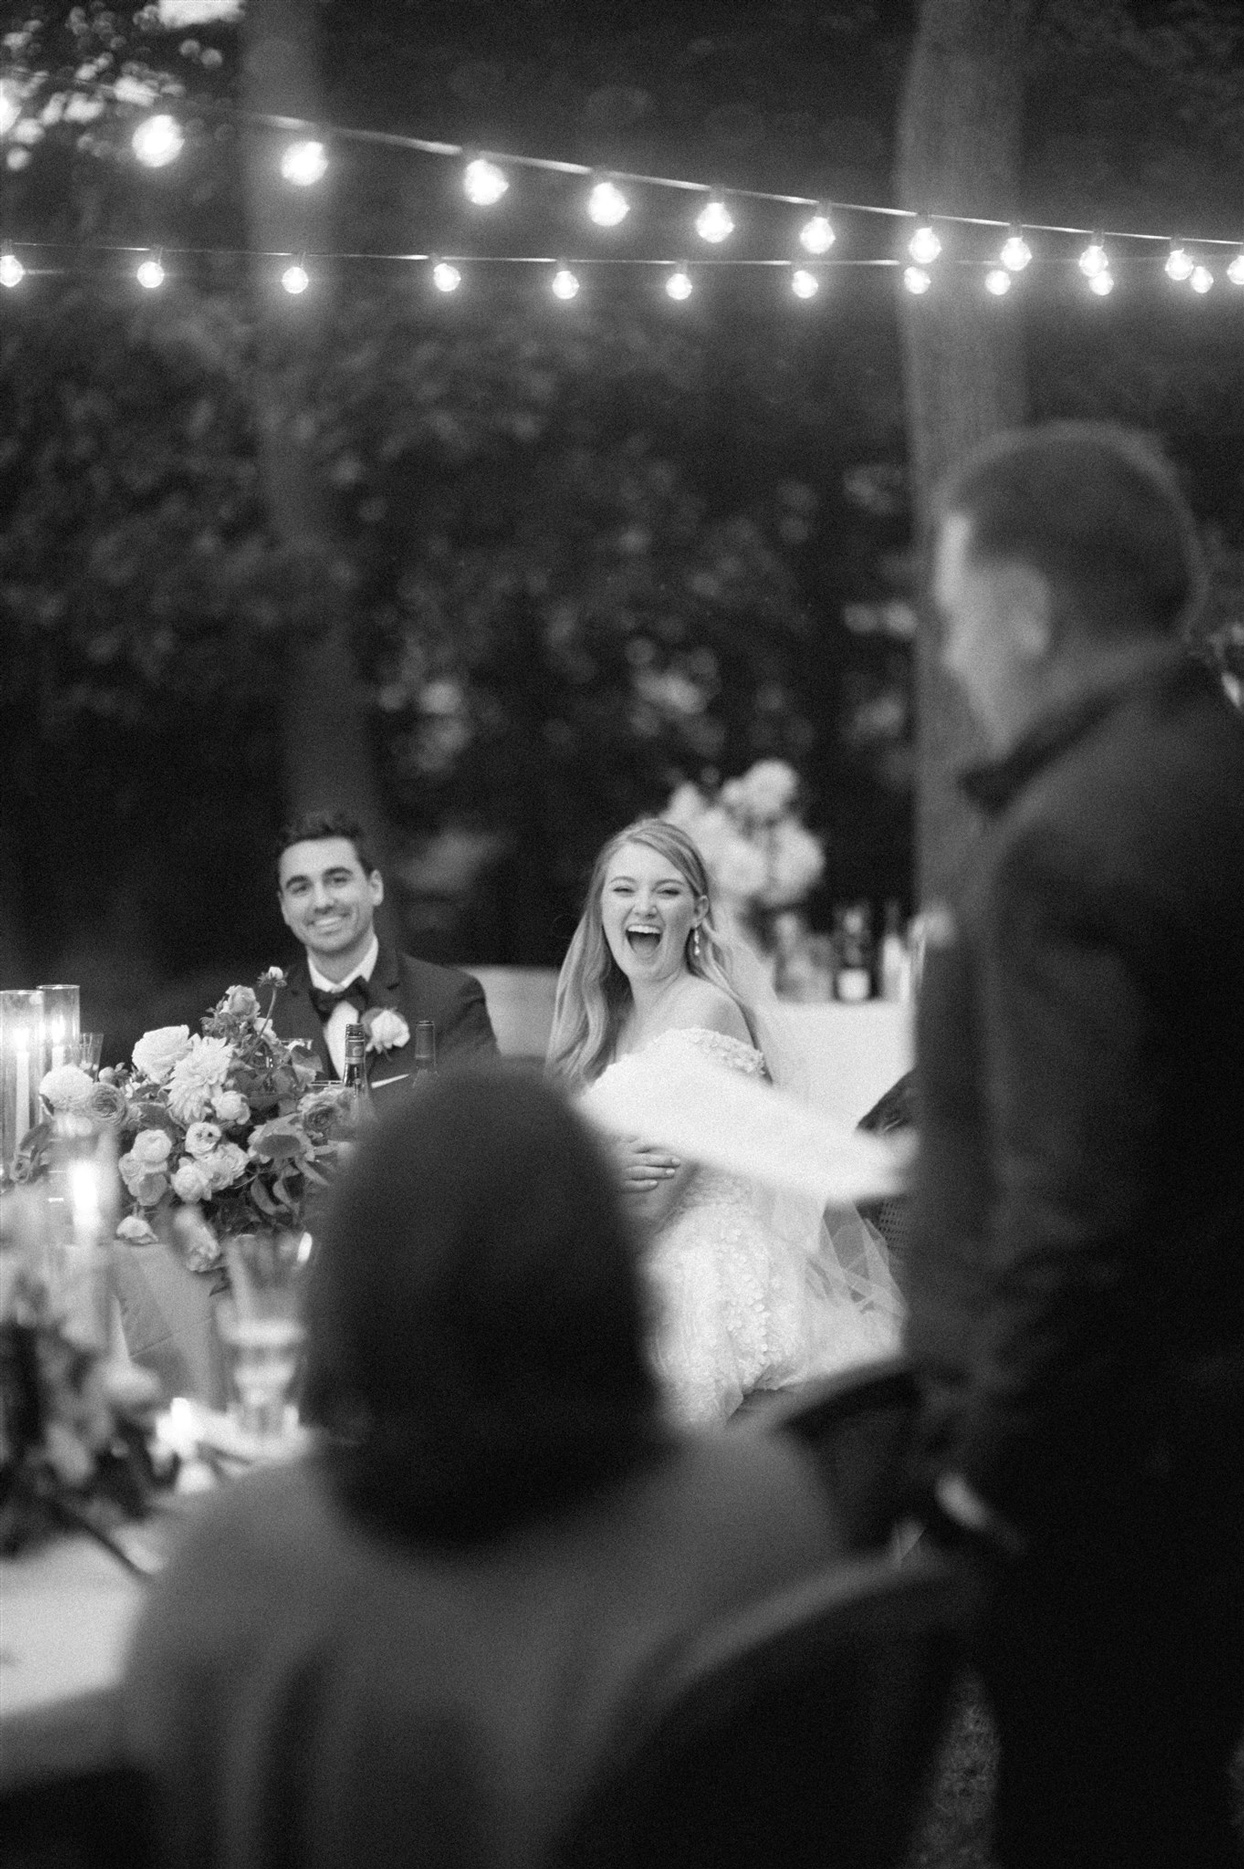 Bride and groom sharing toasts